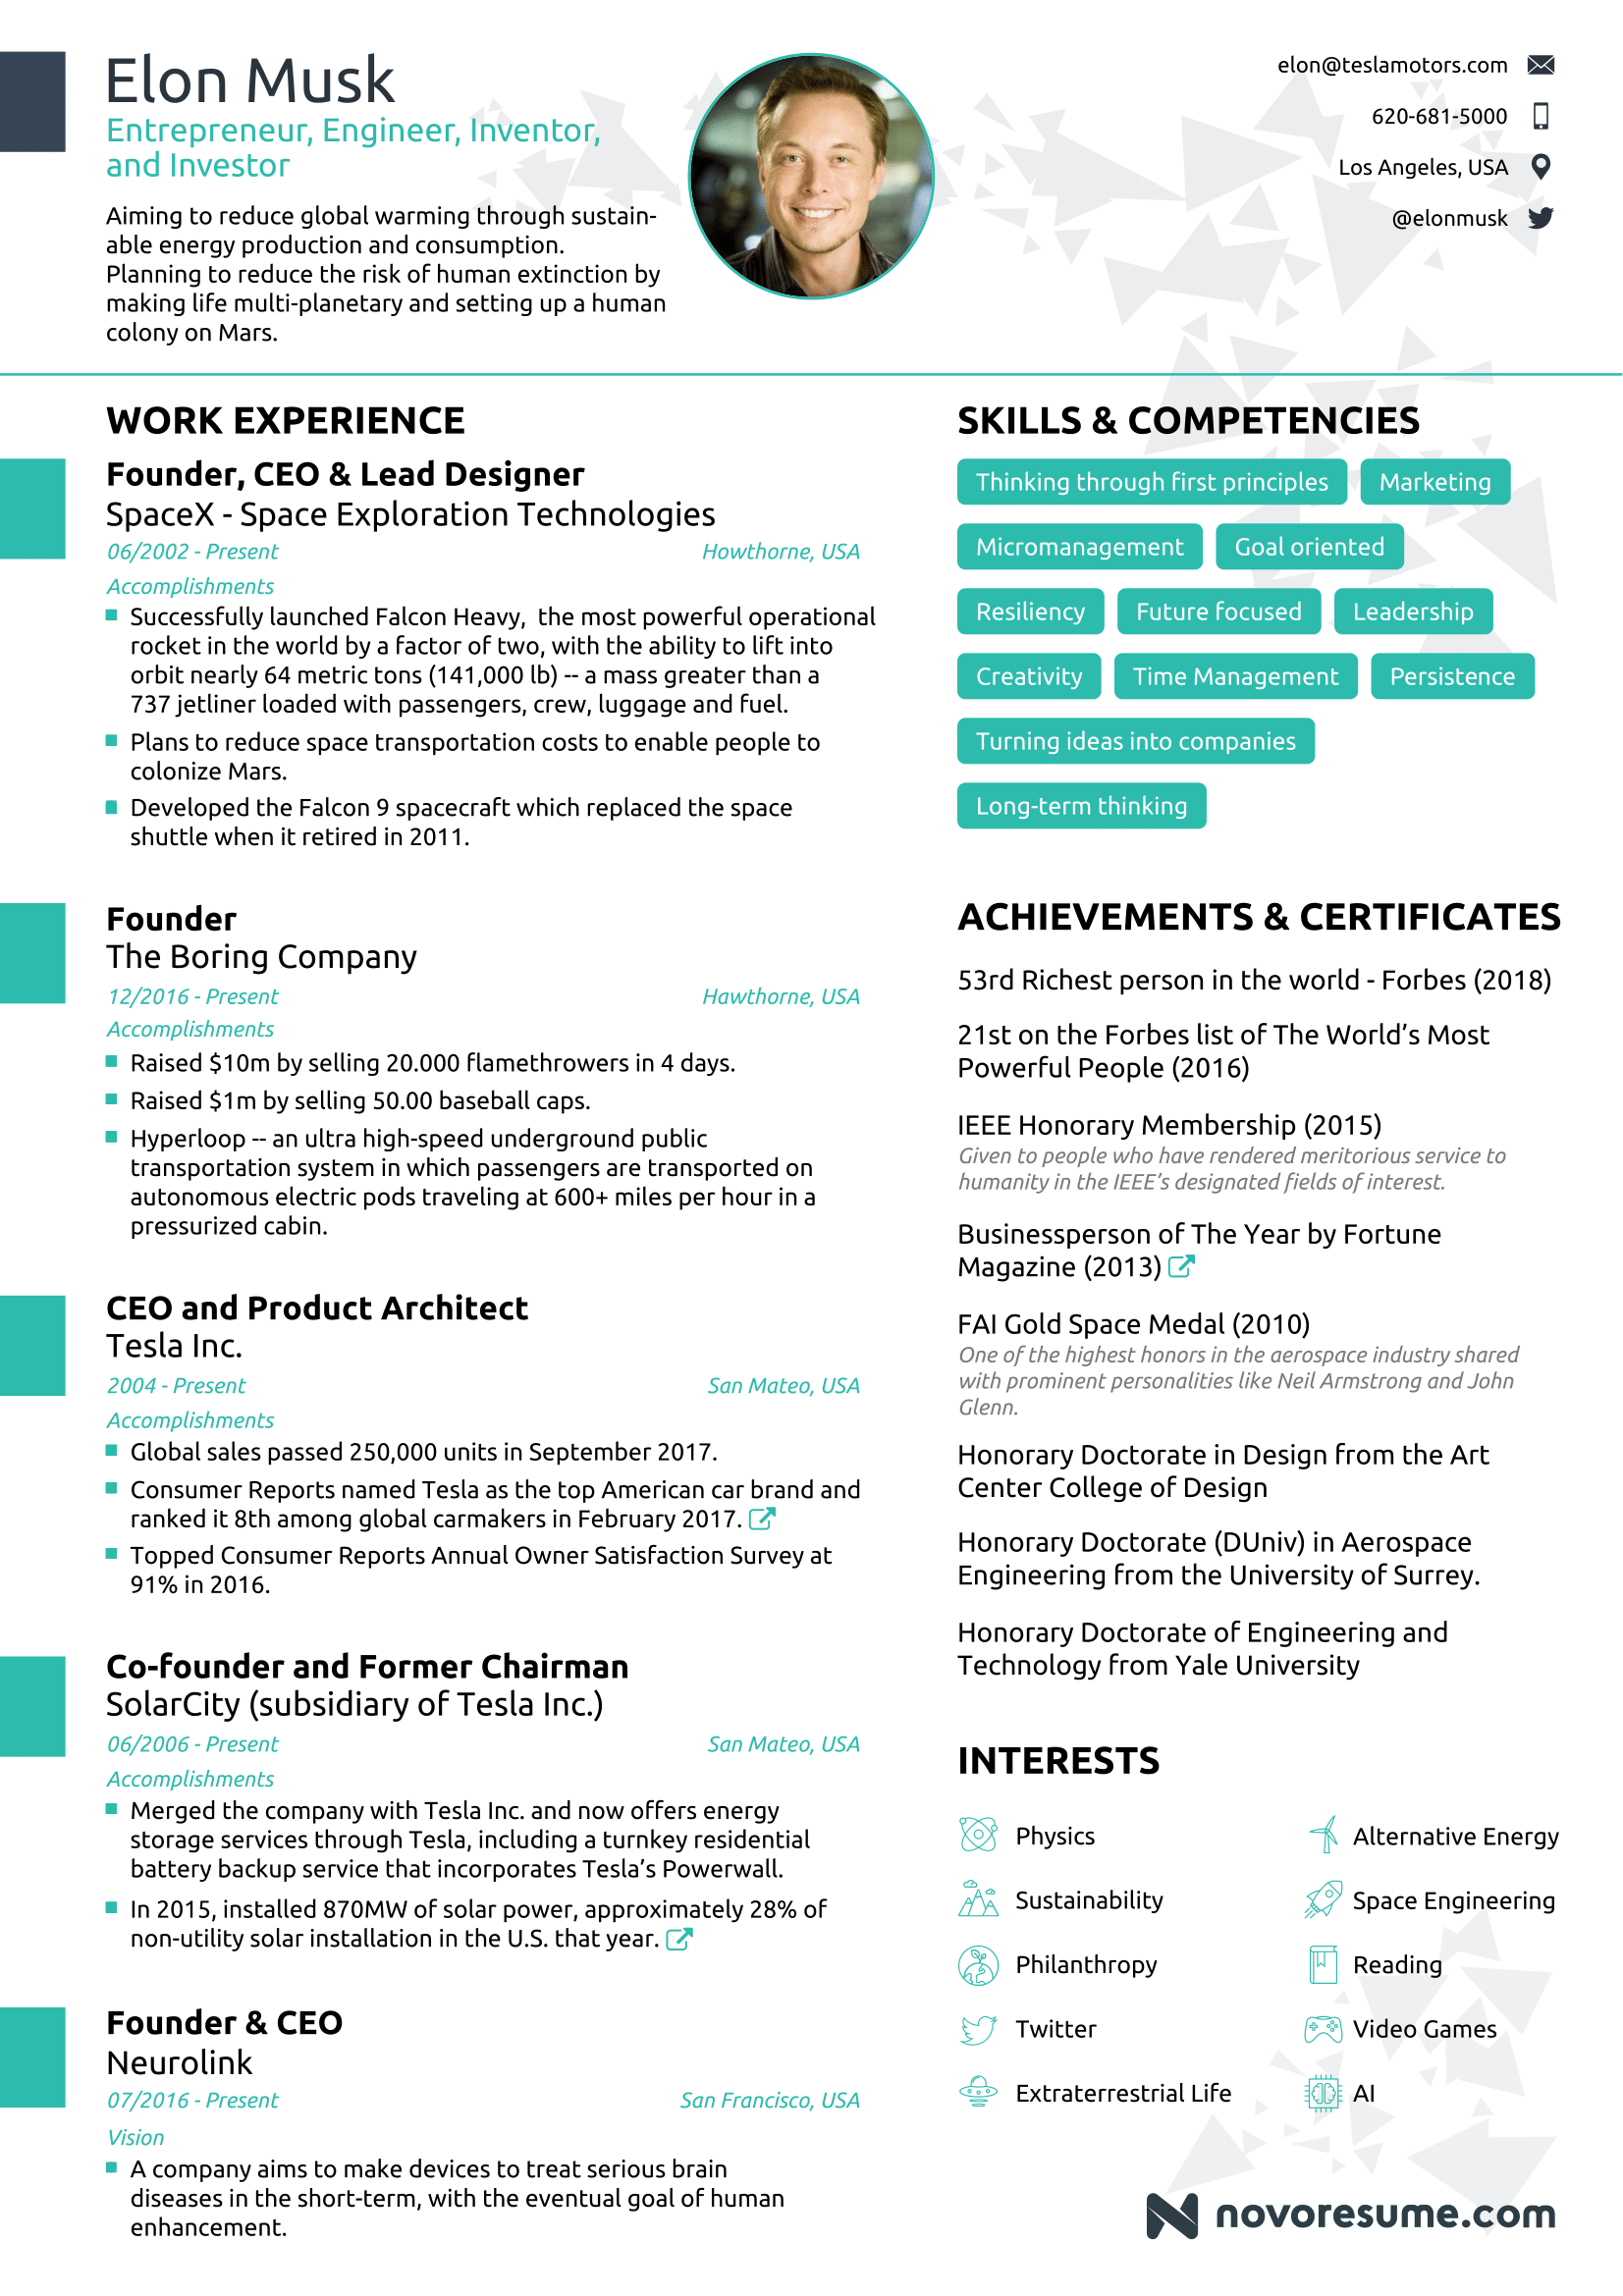 Elon Musk One Page Resume Intended For Elon Musk Resume